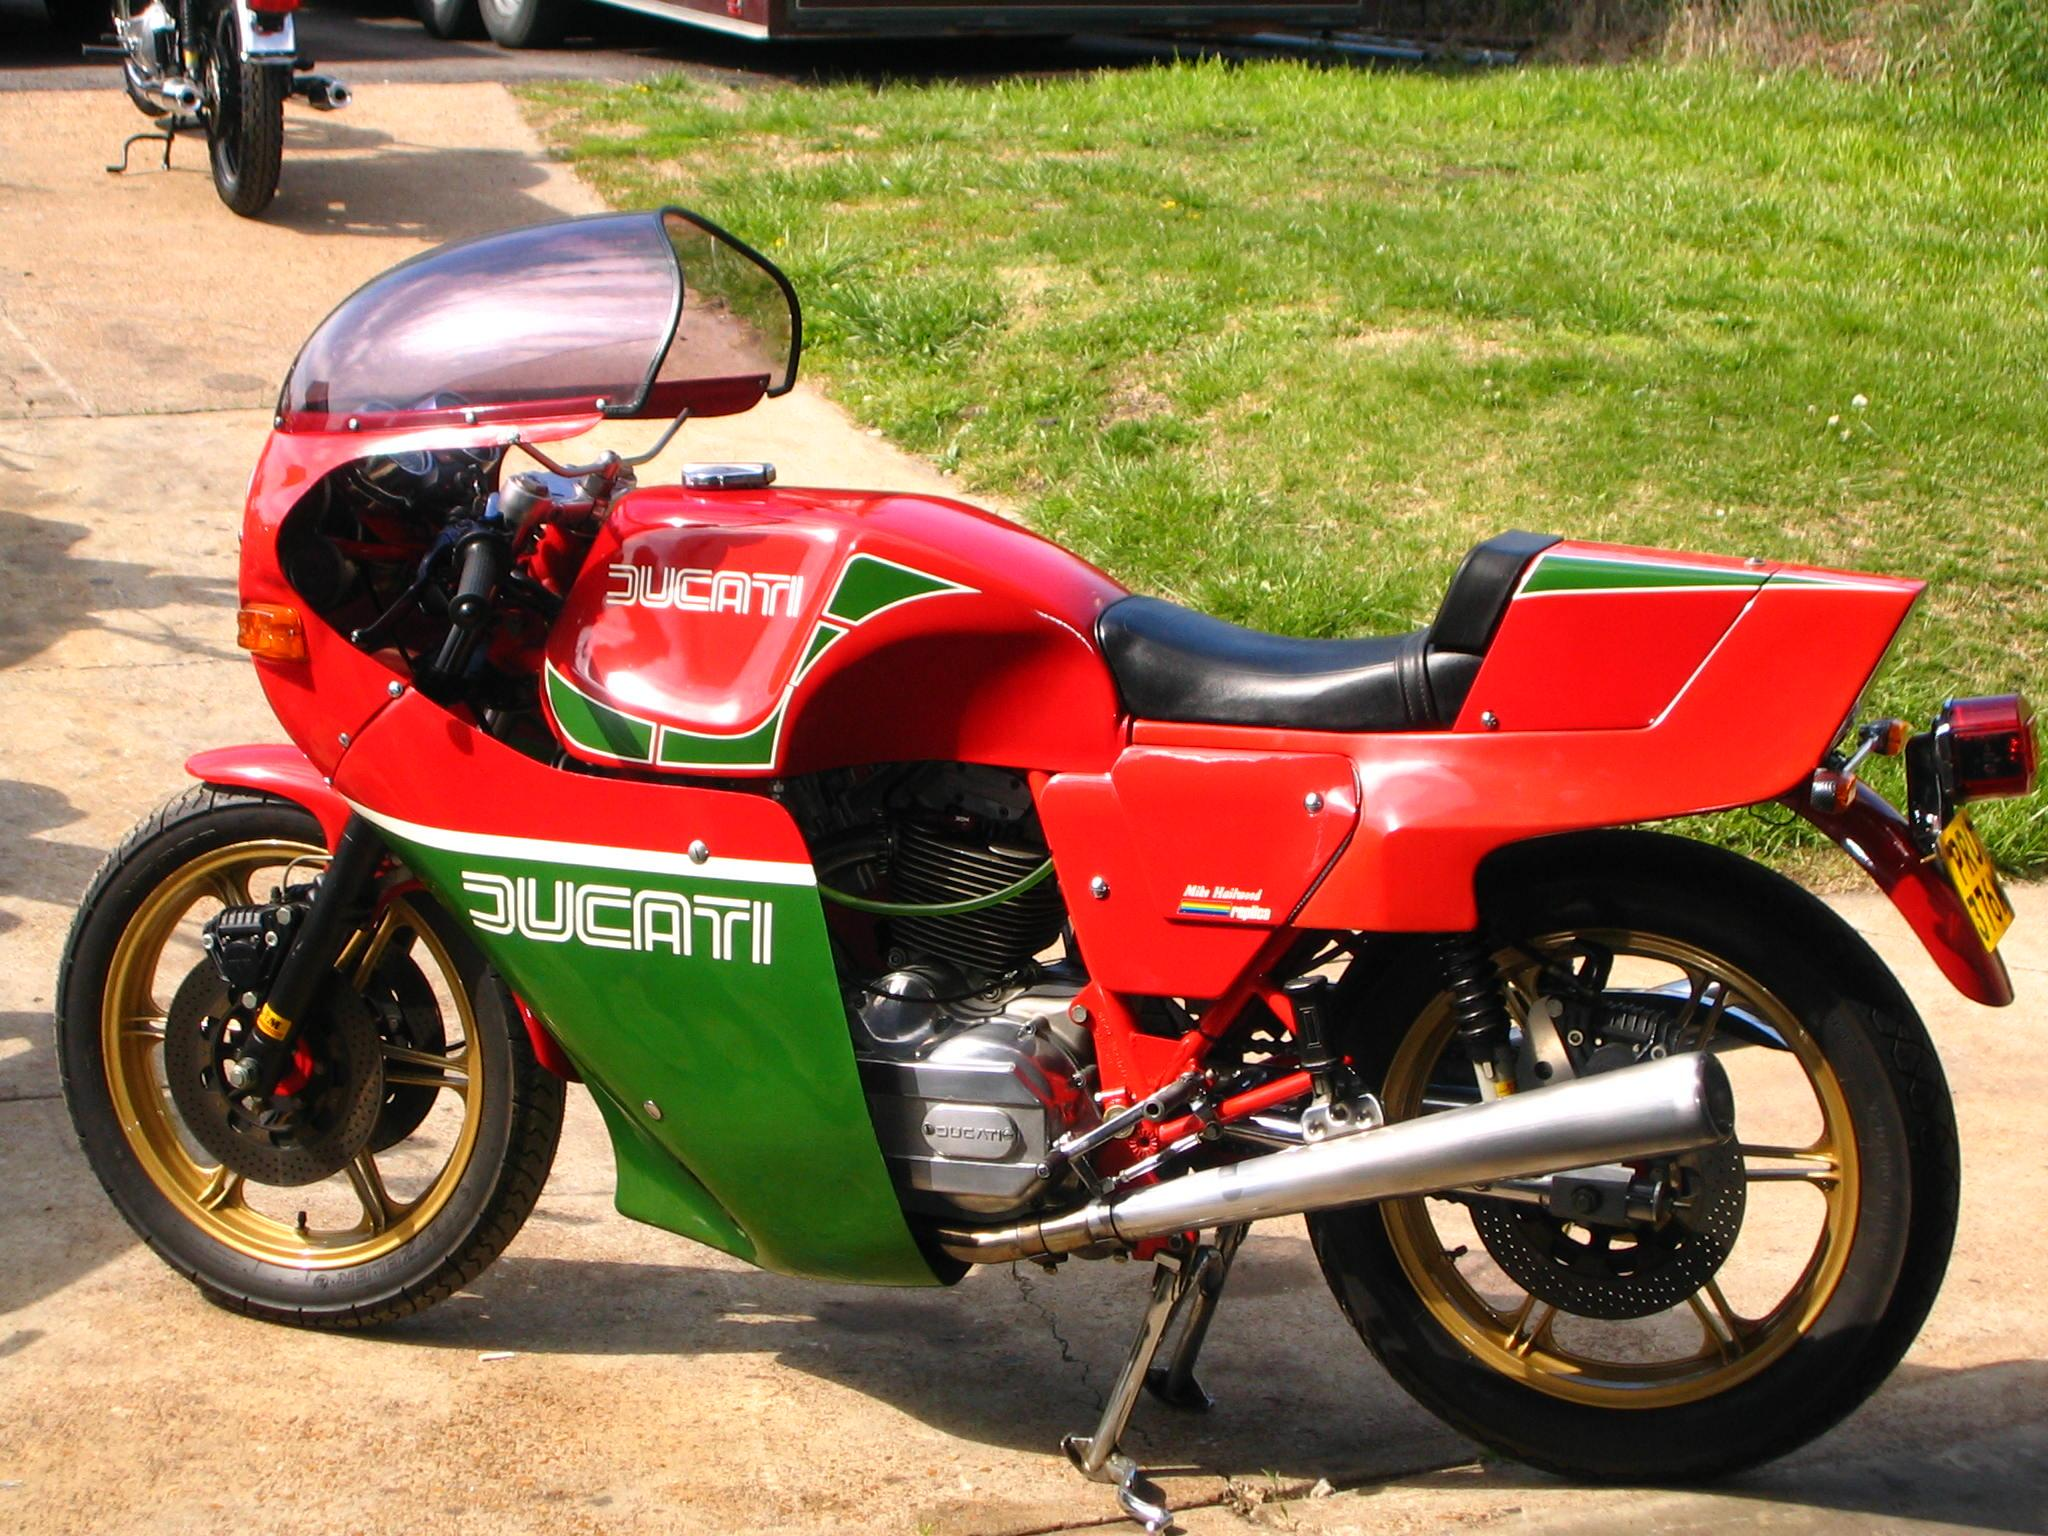 My sport classic tribute 900ss Mike Hailwood - Ducati.ms - The ...